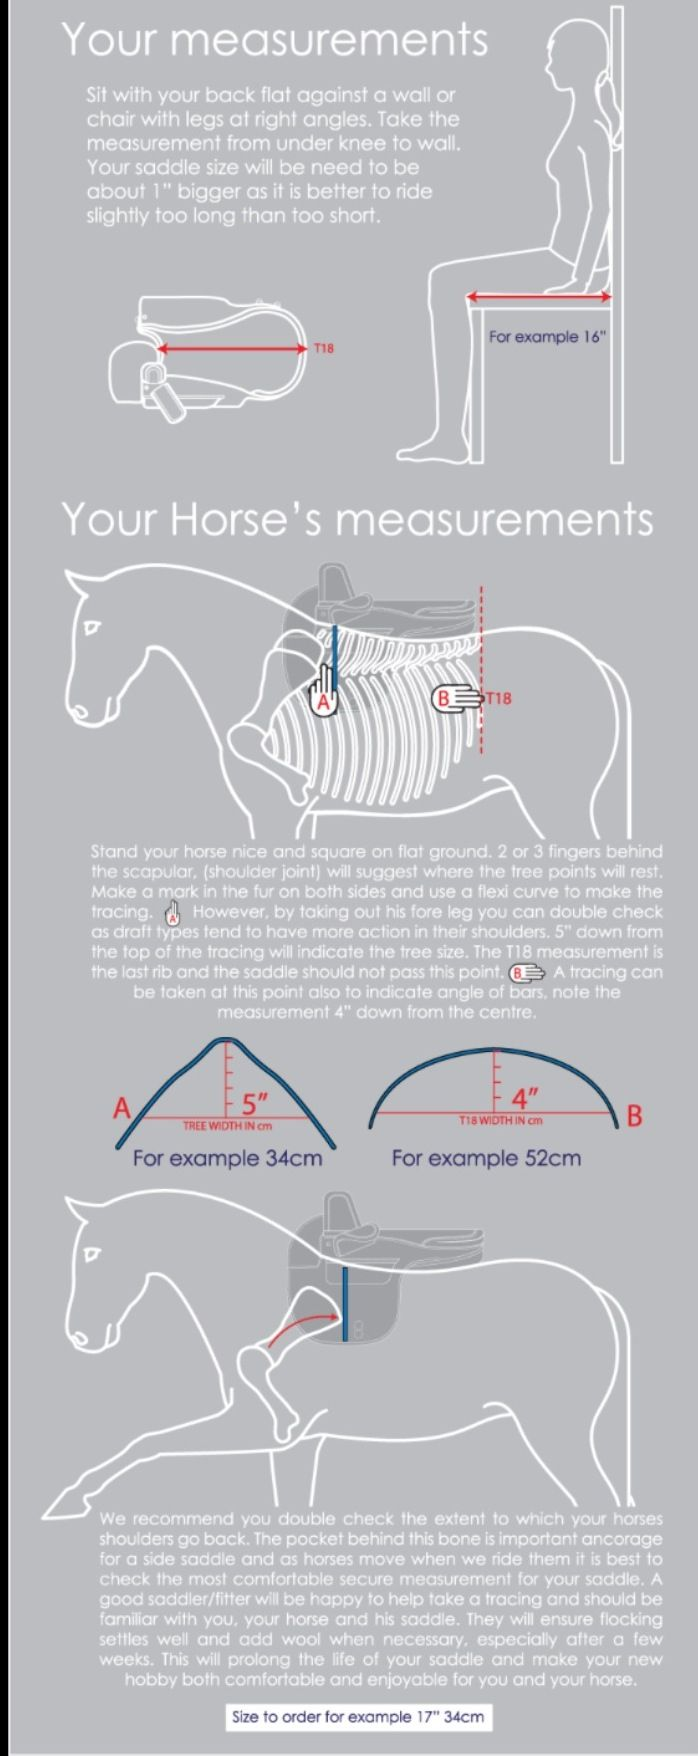 Measuring you and your horse for a saddle